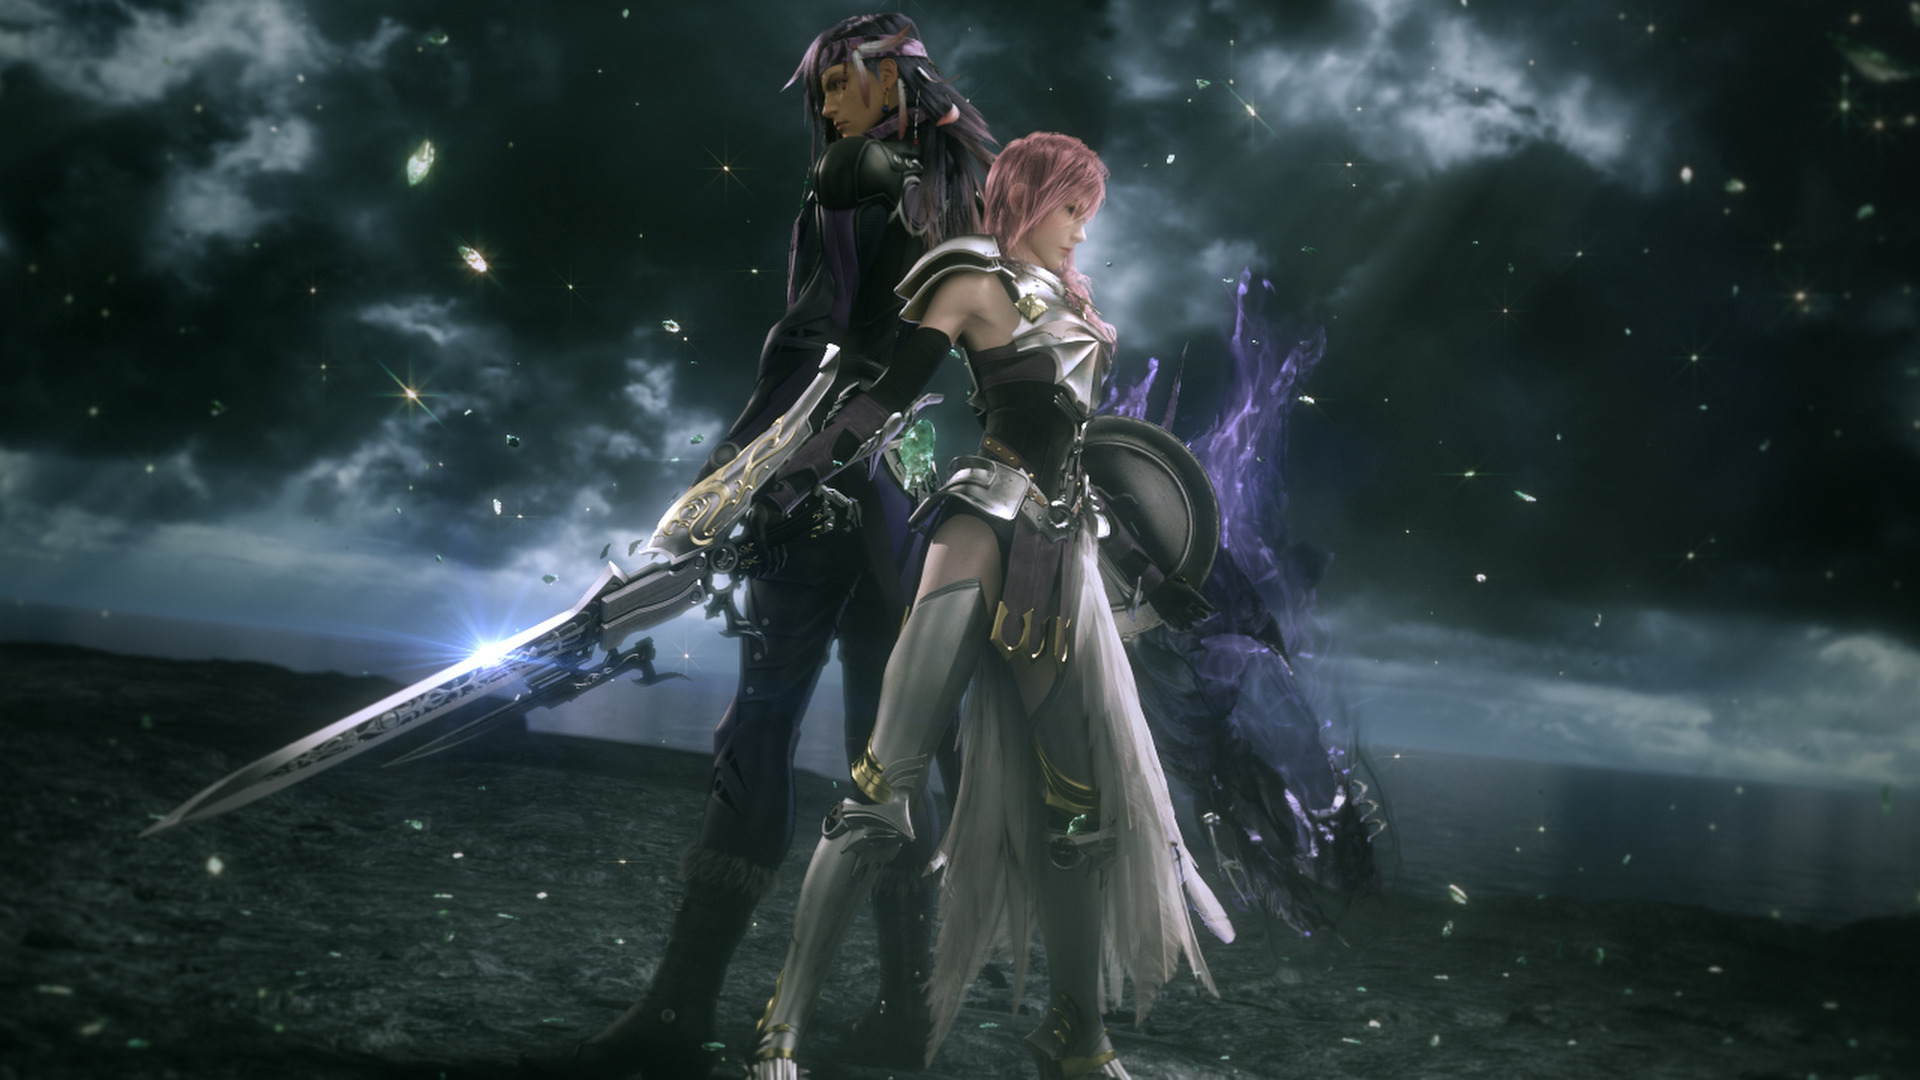 Final Fantasy Xiii 2 Wallpaper 010 Lightning And Caius